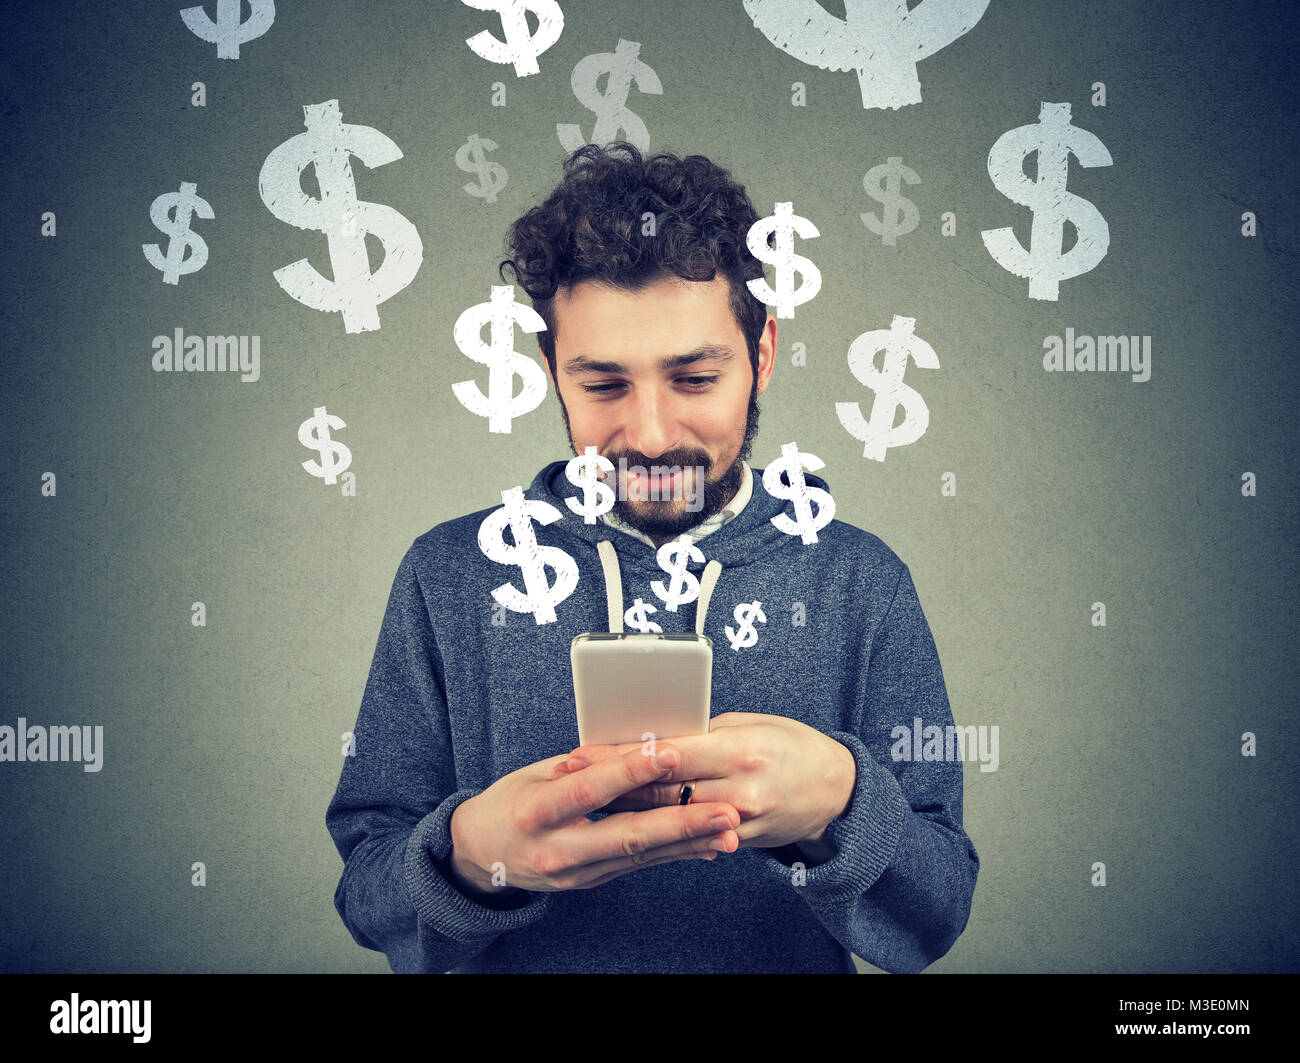 Content young man using smartphone and making business from social media. - Stock Image